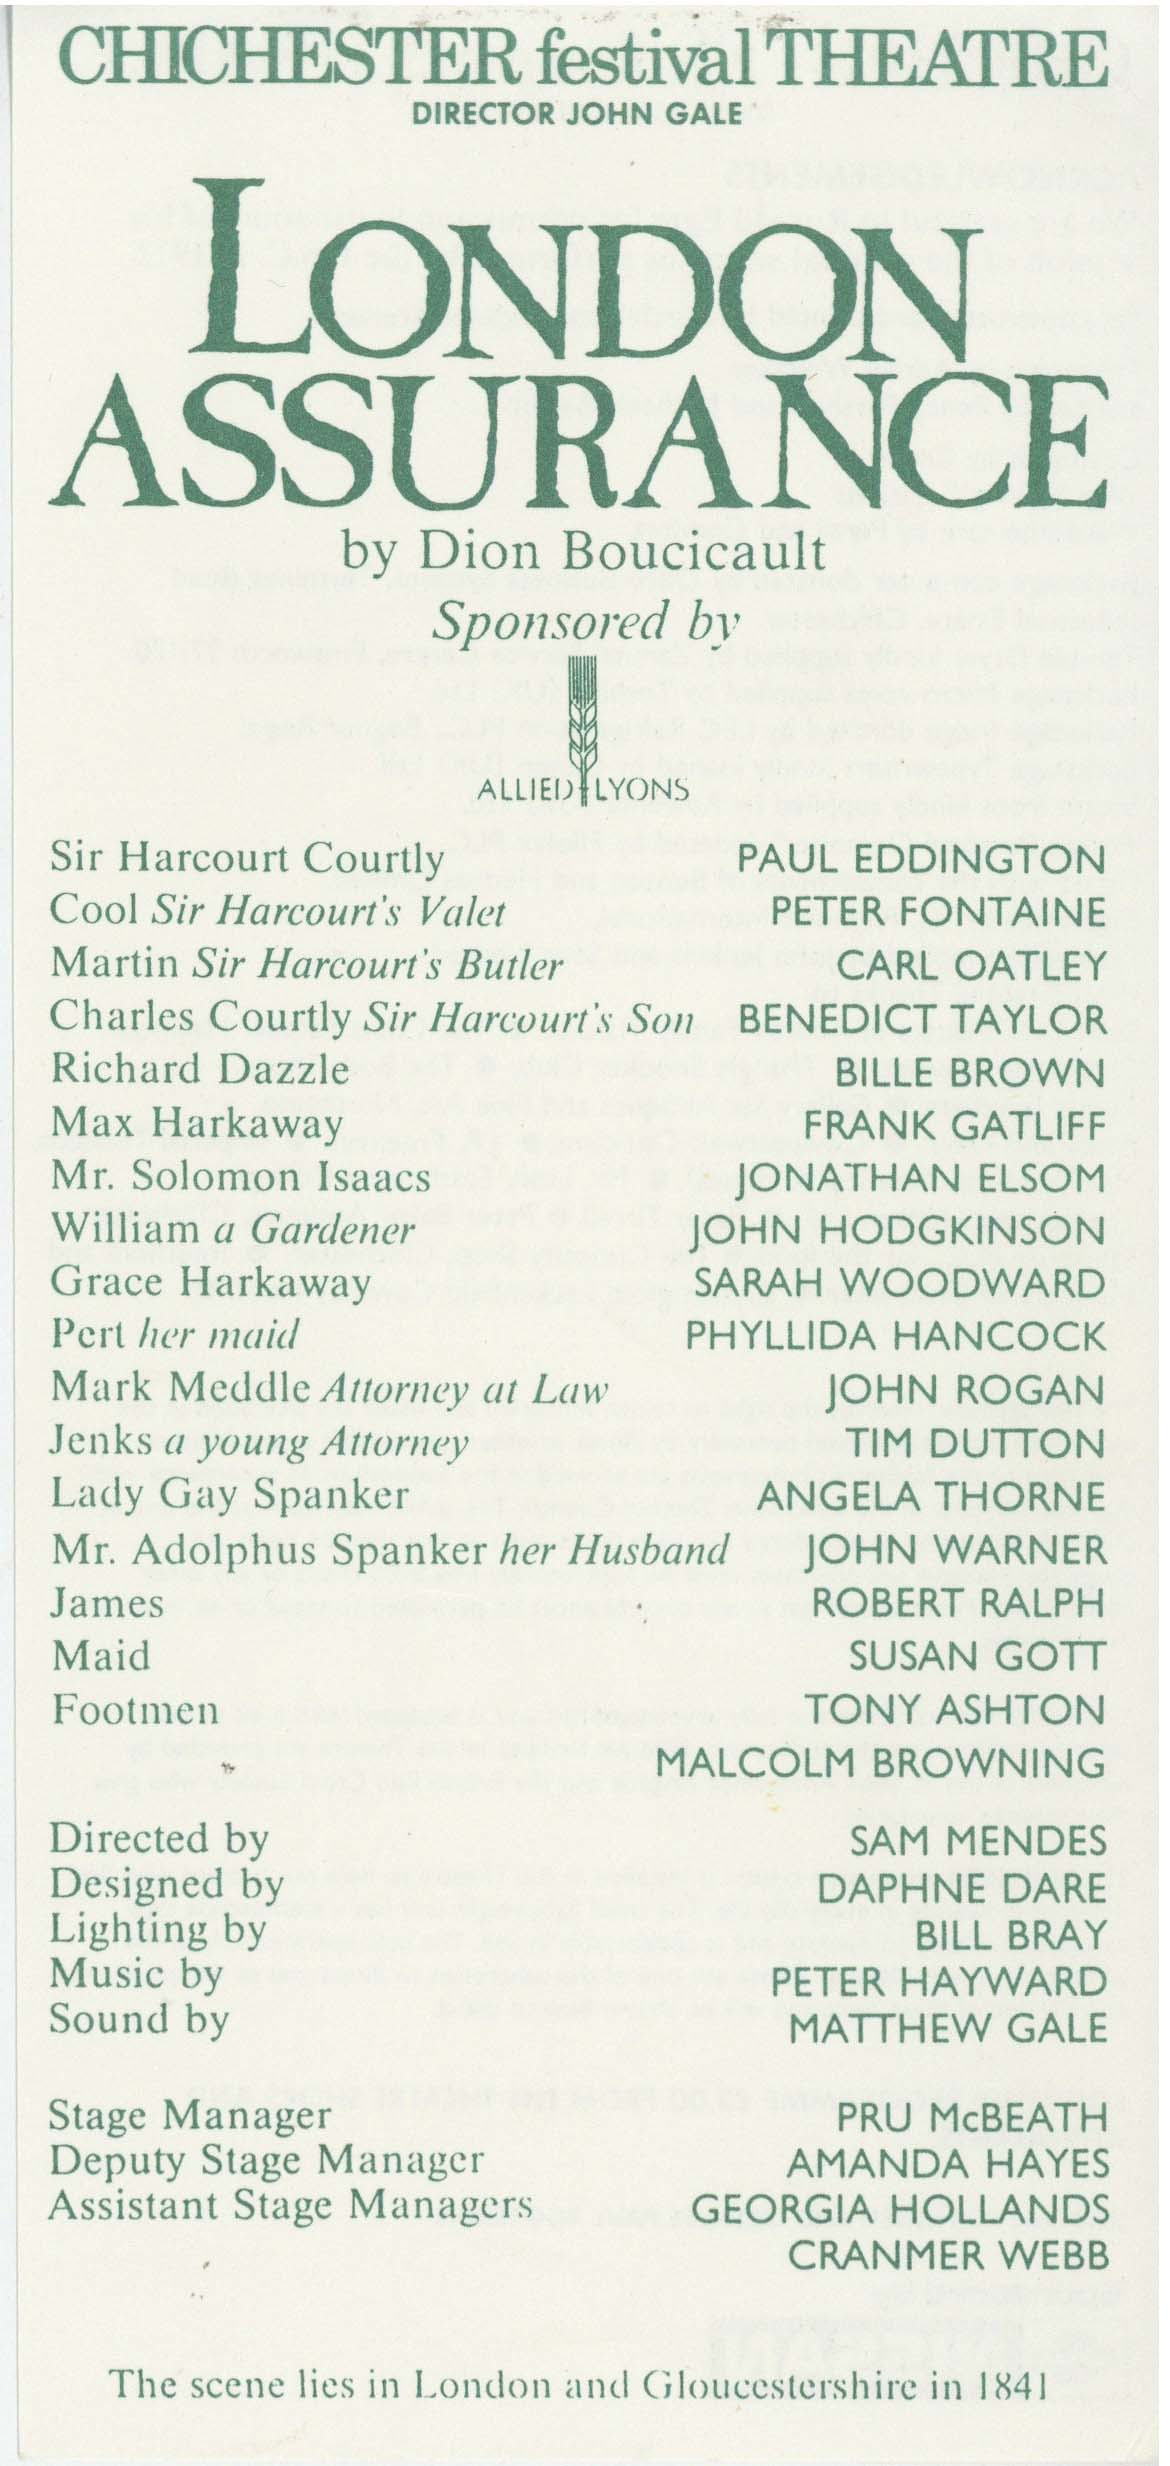 Cast List - London Assurance - 1989 - 1 of 2